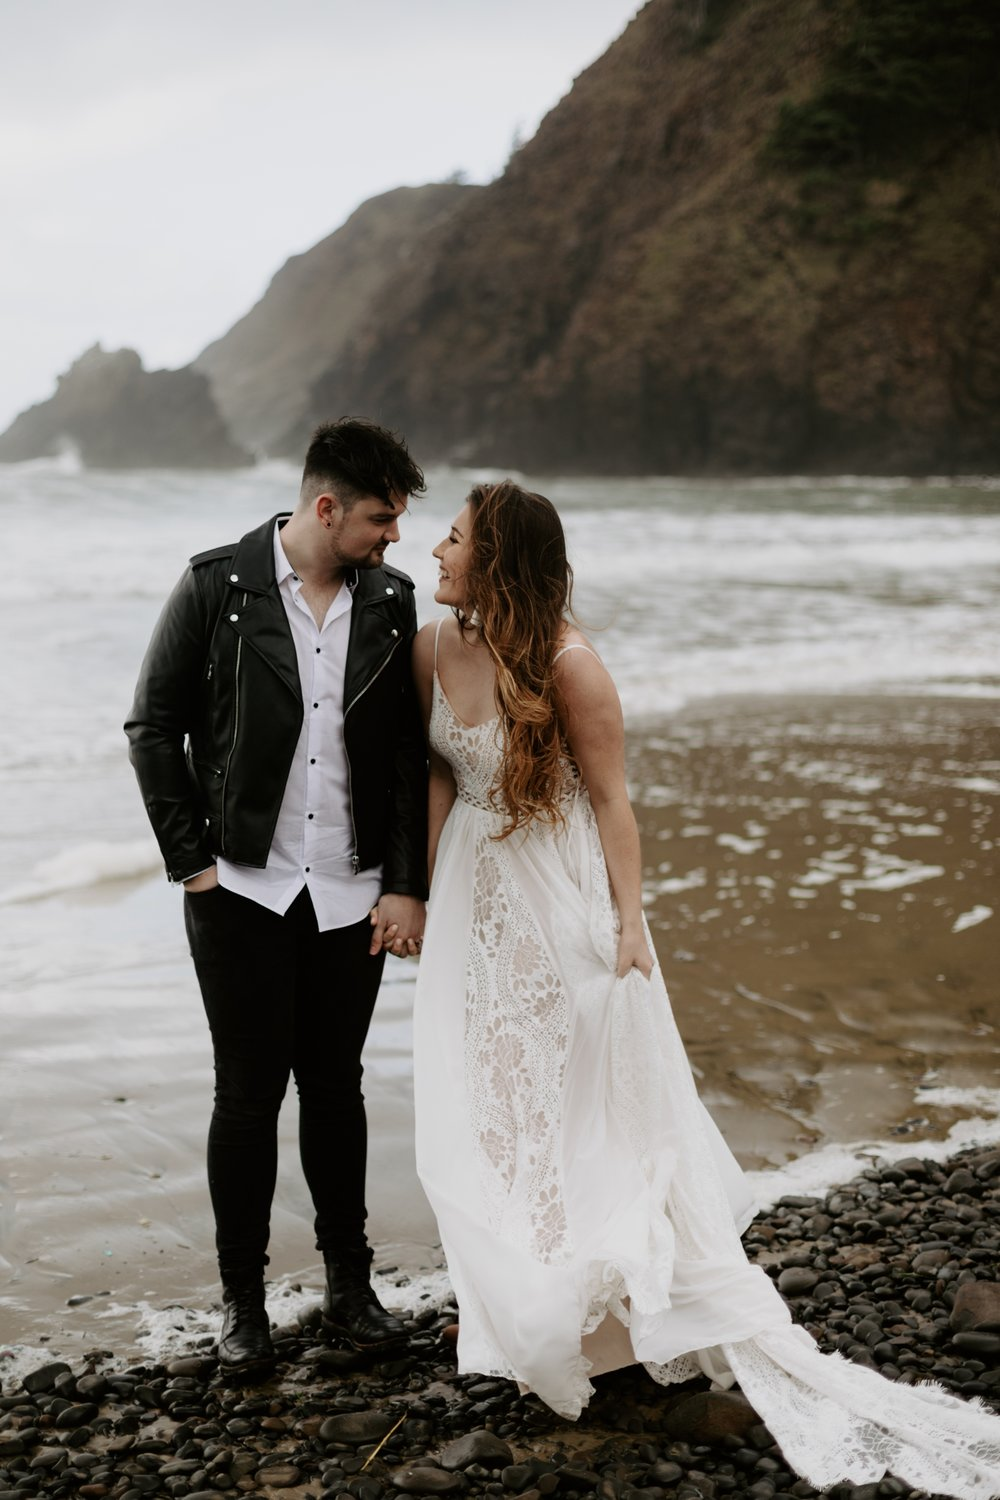 intimate-oregon-coast-elopement-2018-04-26_0007.jpg